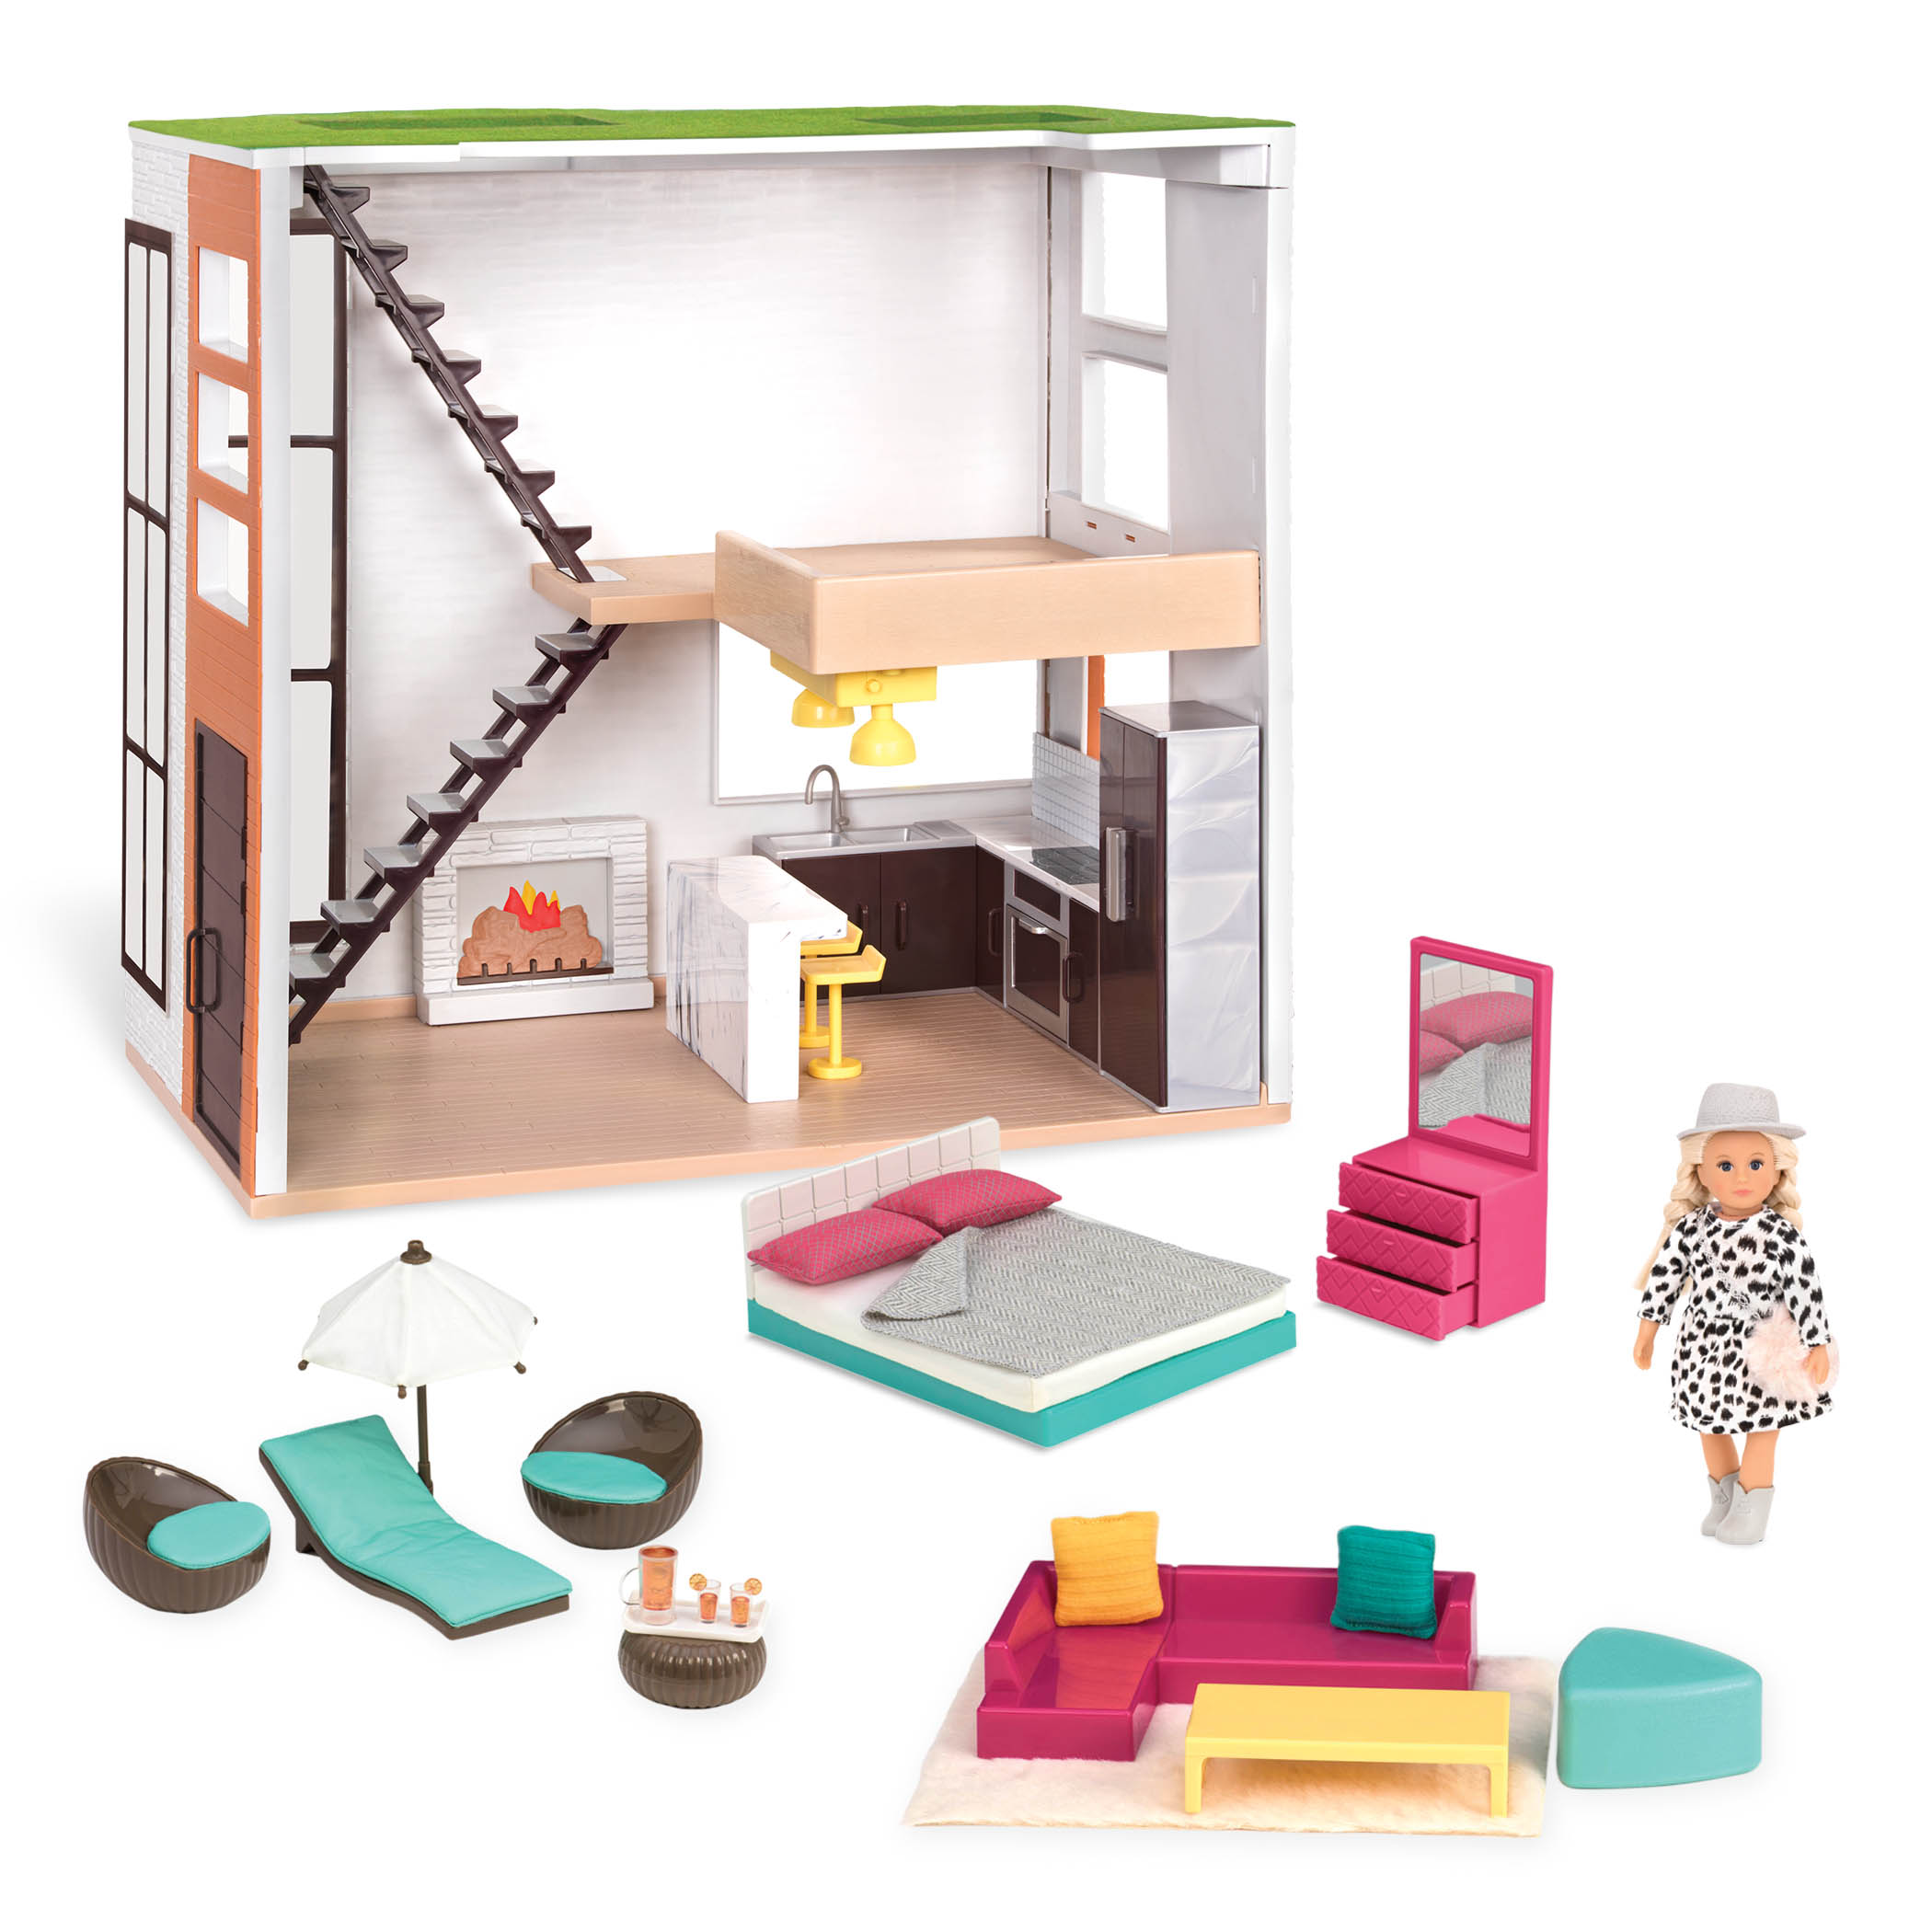 Lori's Loft | Dollhouse & Furniture for 6-inch Dolls | Lori